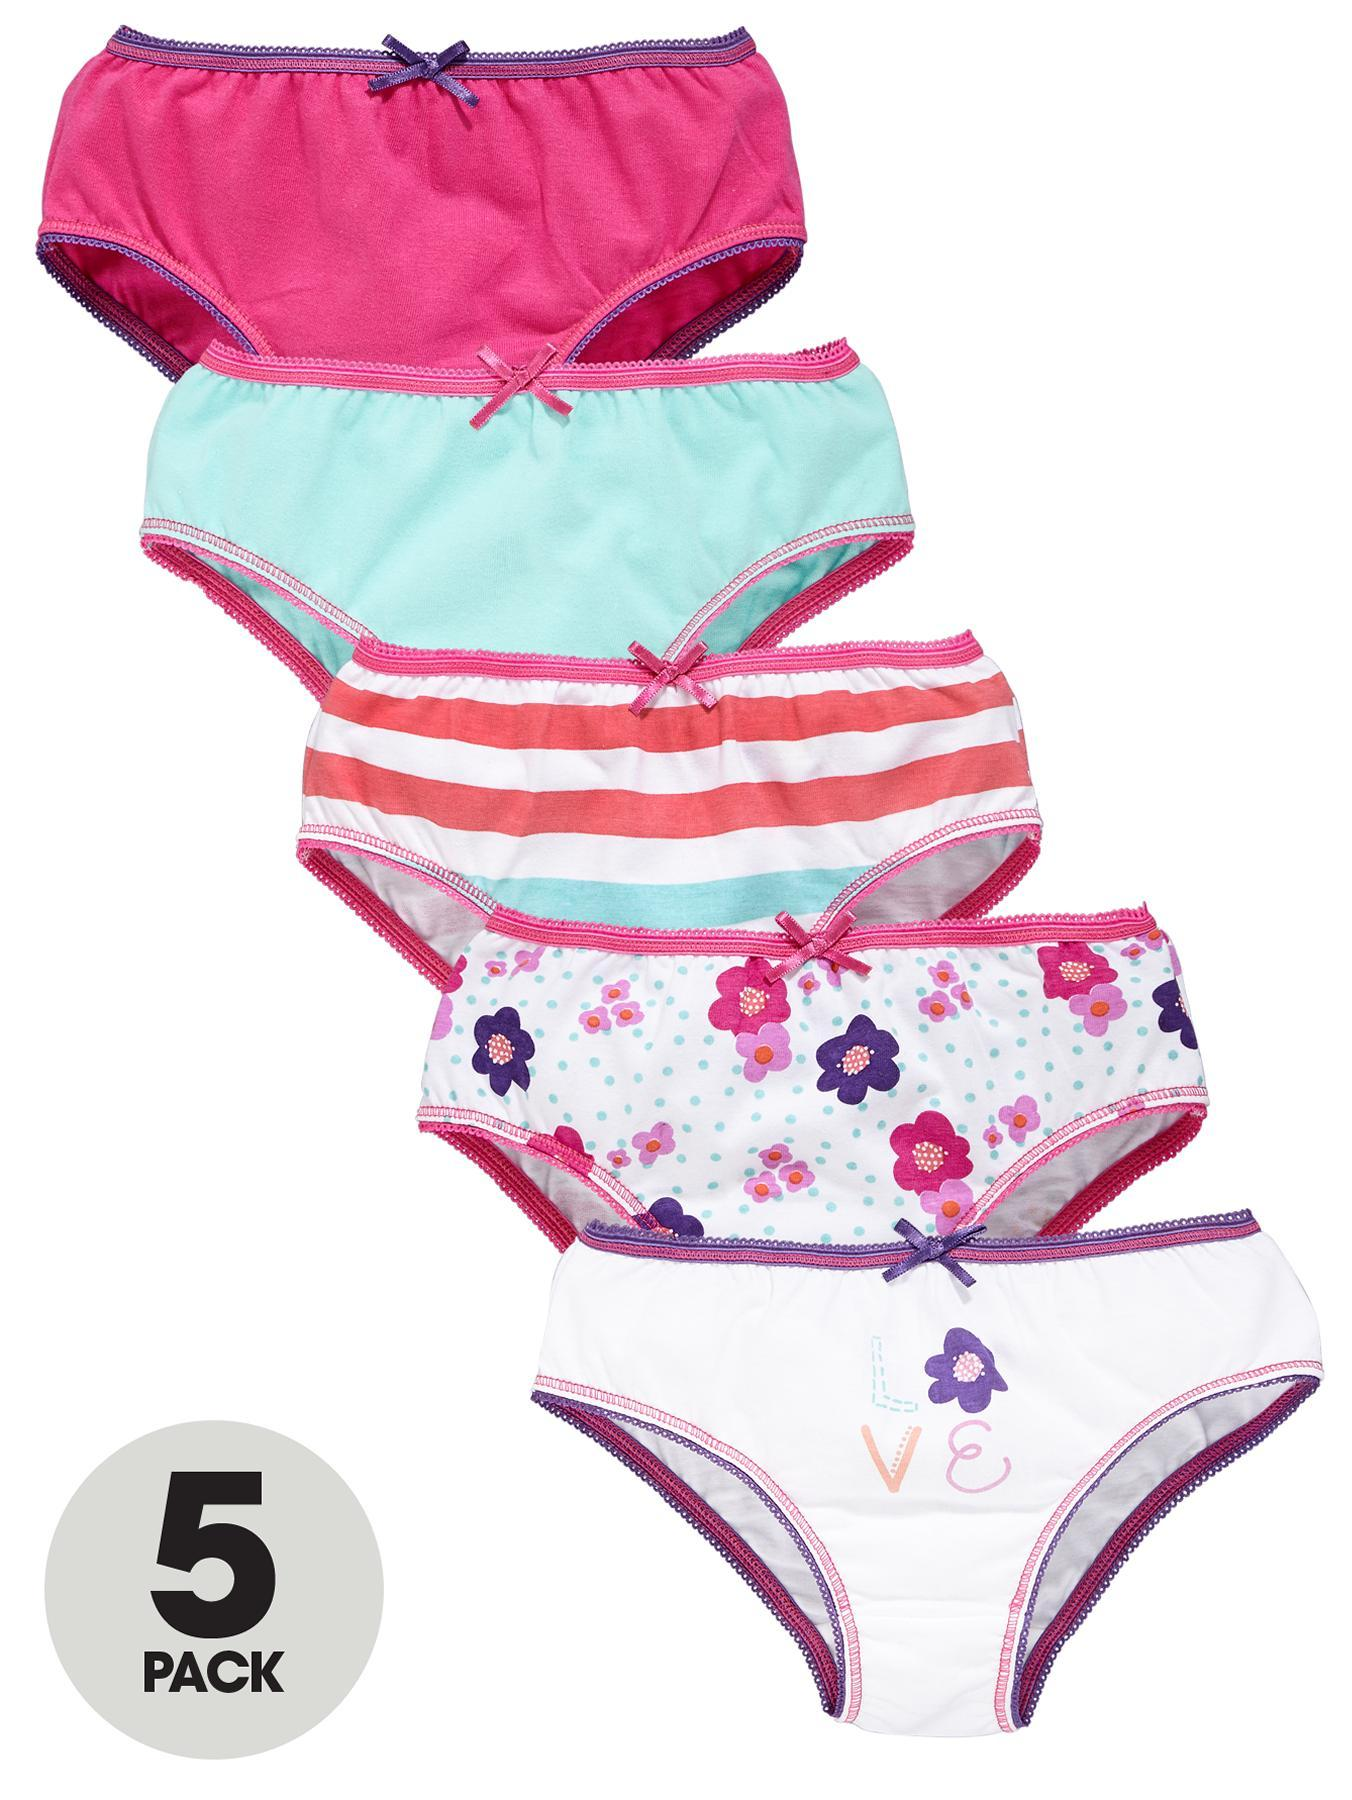 Girls Knickers (5 Pack).